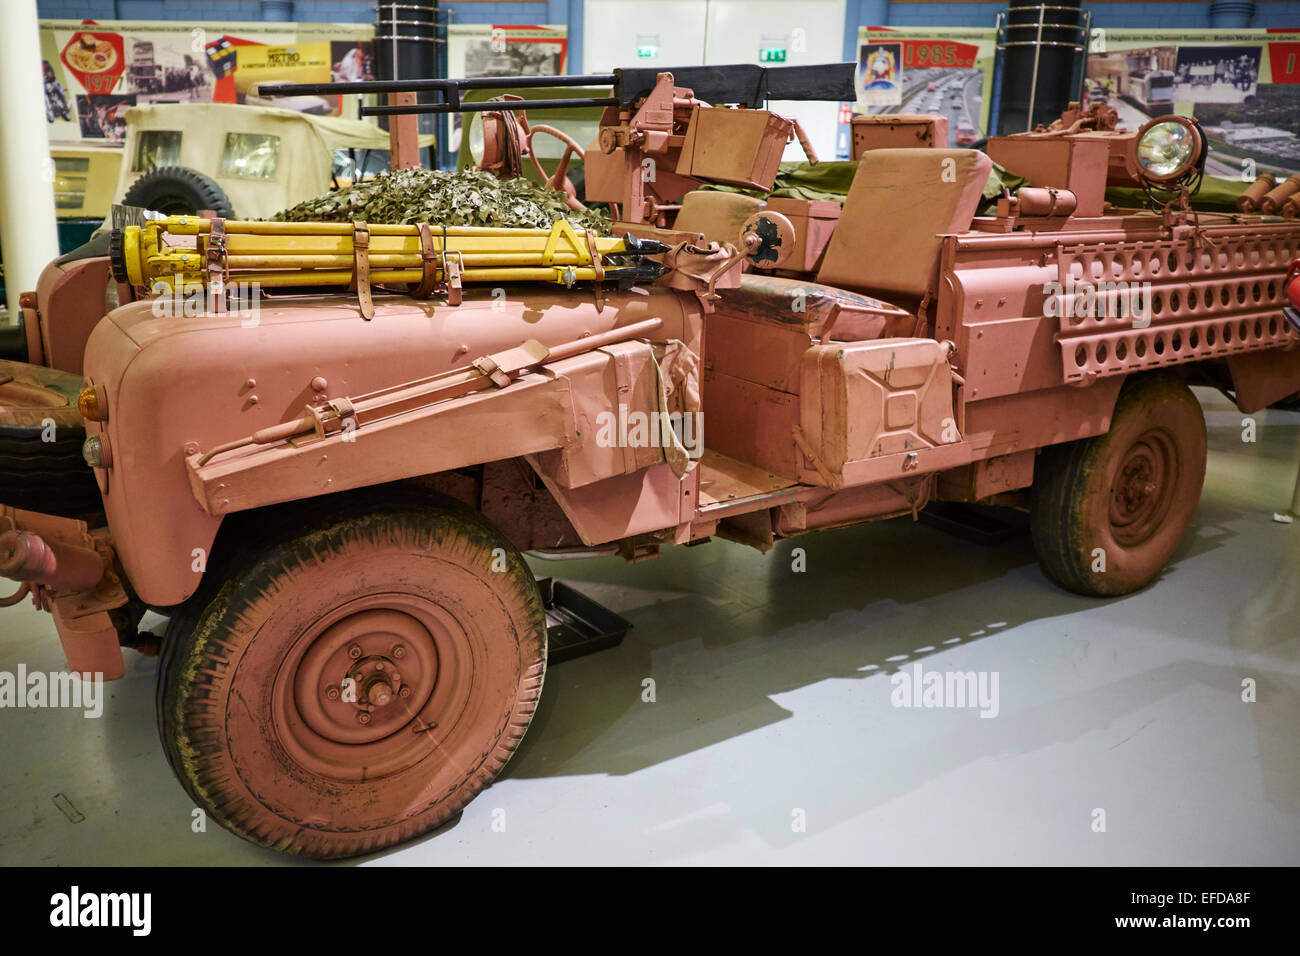 for last not sell pink from d panther mot has it land enjoyment to i gets driven someone else rover landrover m defender rather sale although shooting s since reluctant and been edition